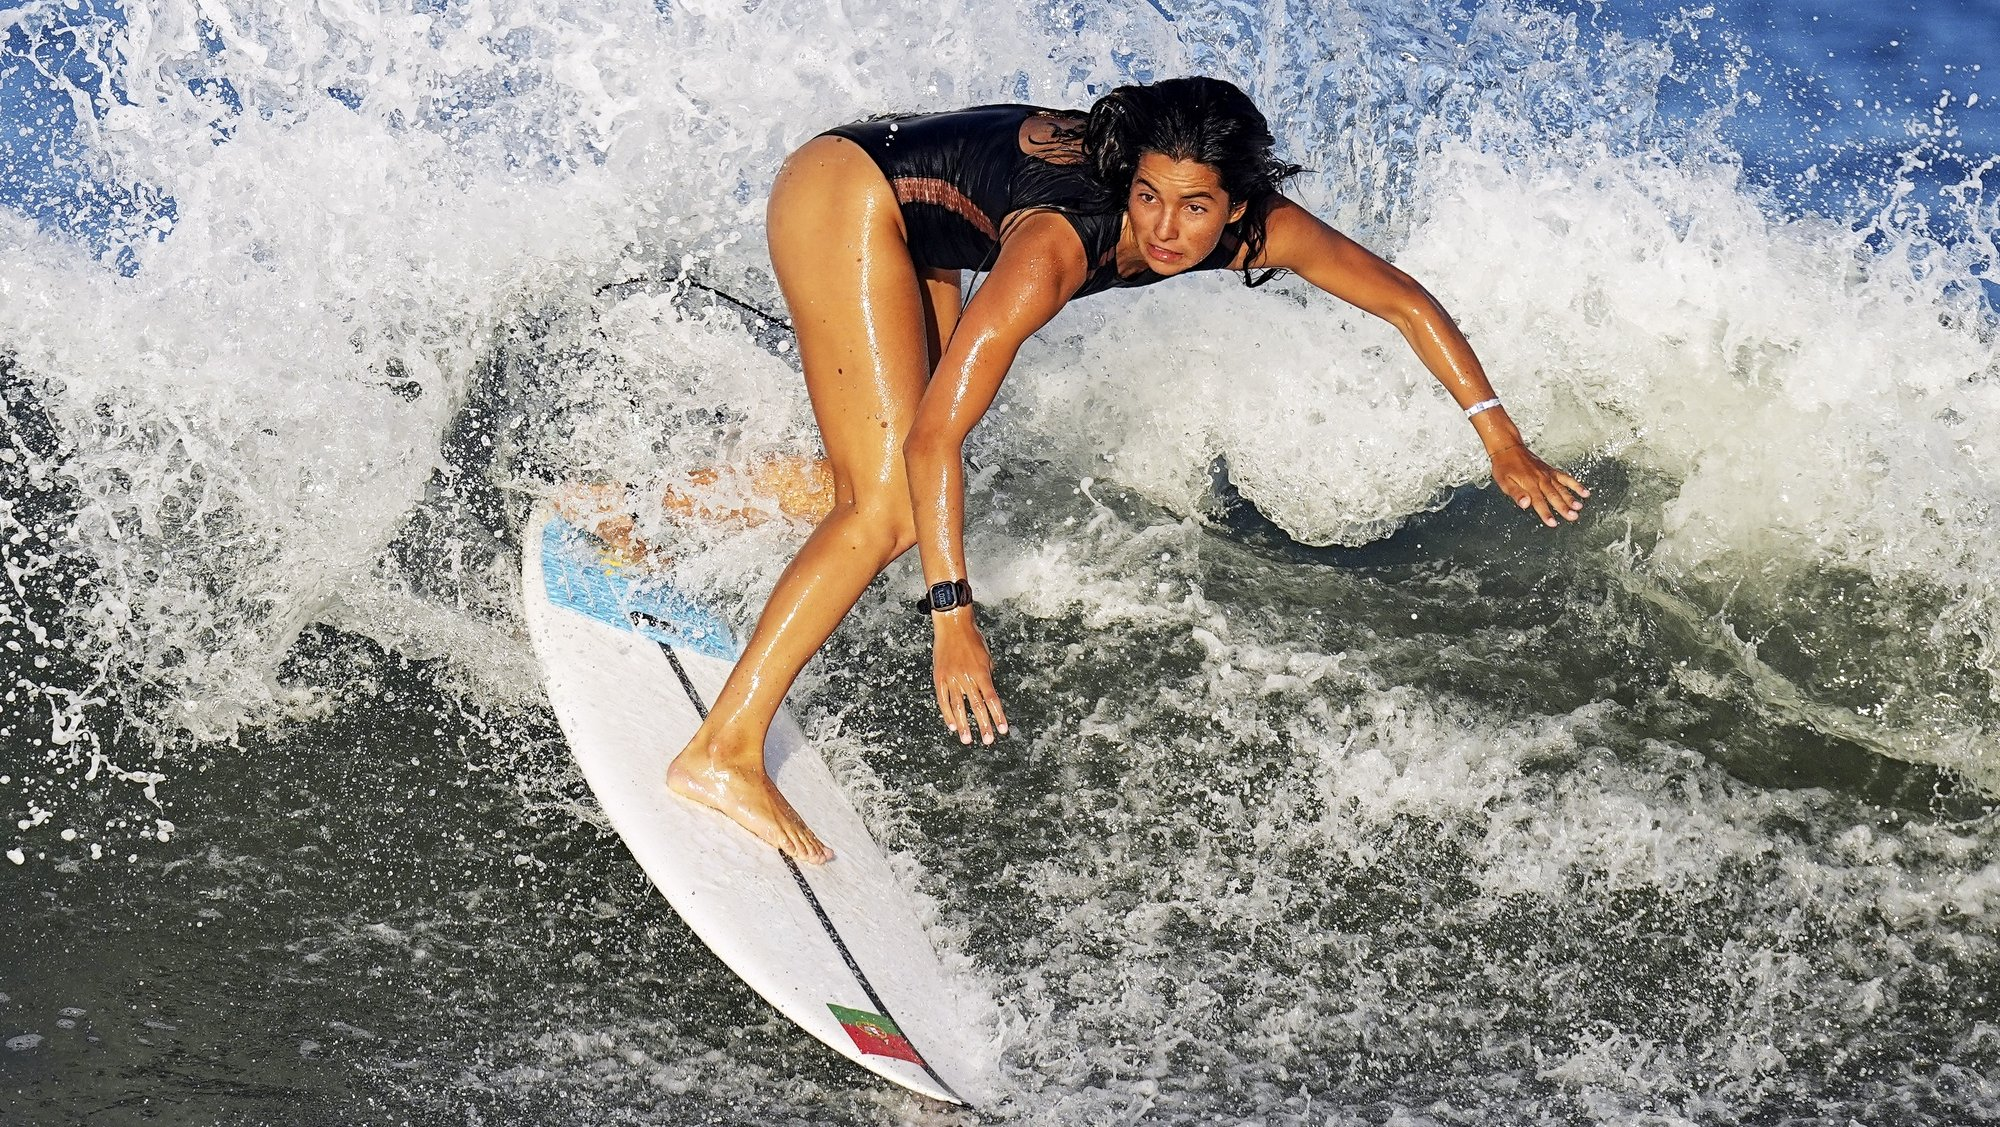 epa09361491 Teresa Bonvalot from Portugal surfs during a training session at the Tsurigasaki Surfing Beach, Ichinomiya, Japan 24 July 2021. Surfing will debut as an Olympic sport for the first time in history when competition begins on 25 July 2021.  EPA/NIC BOTHMA